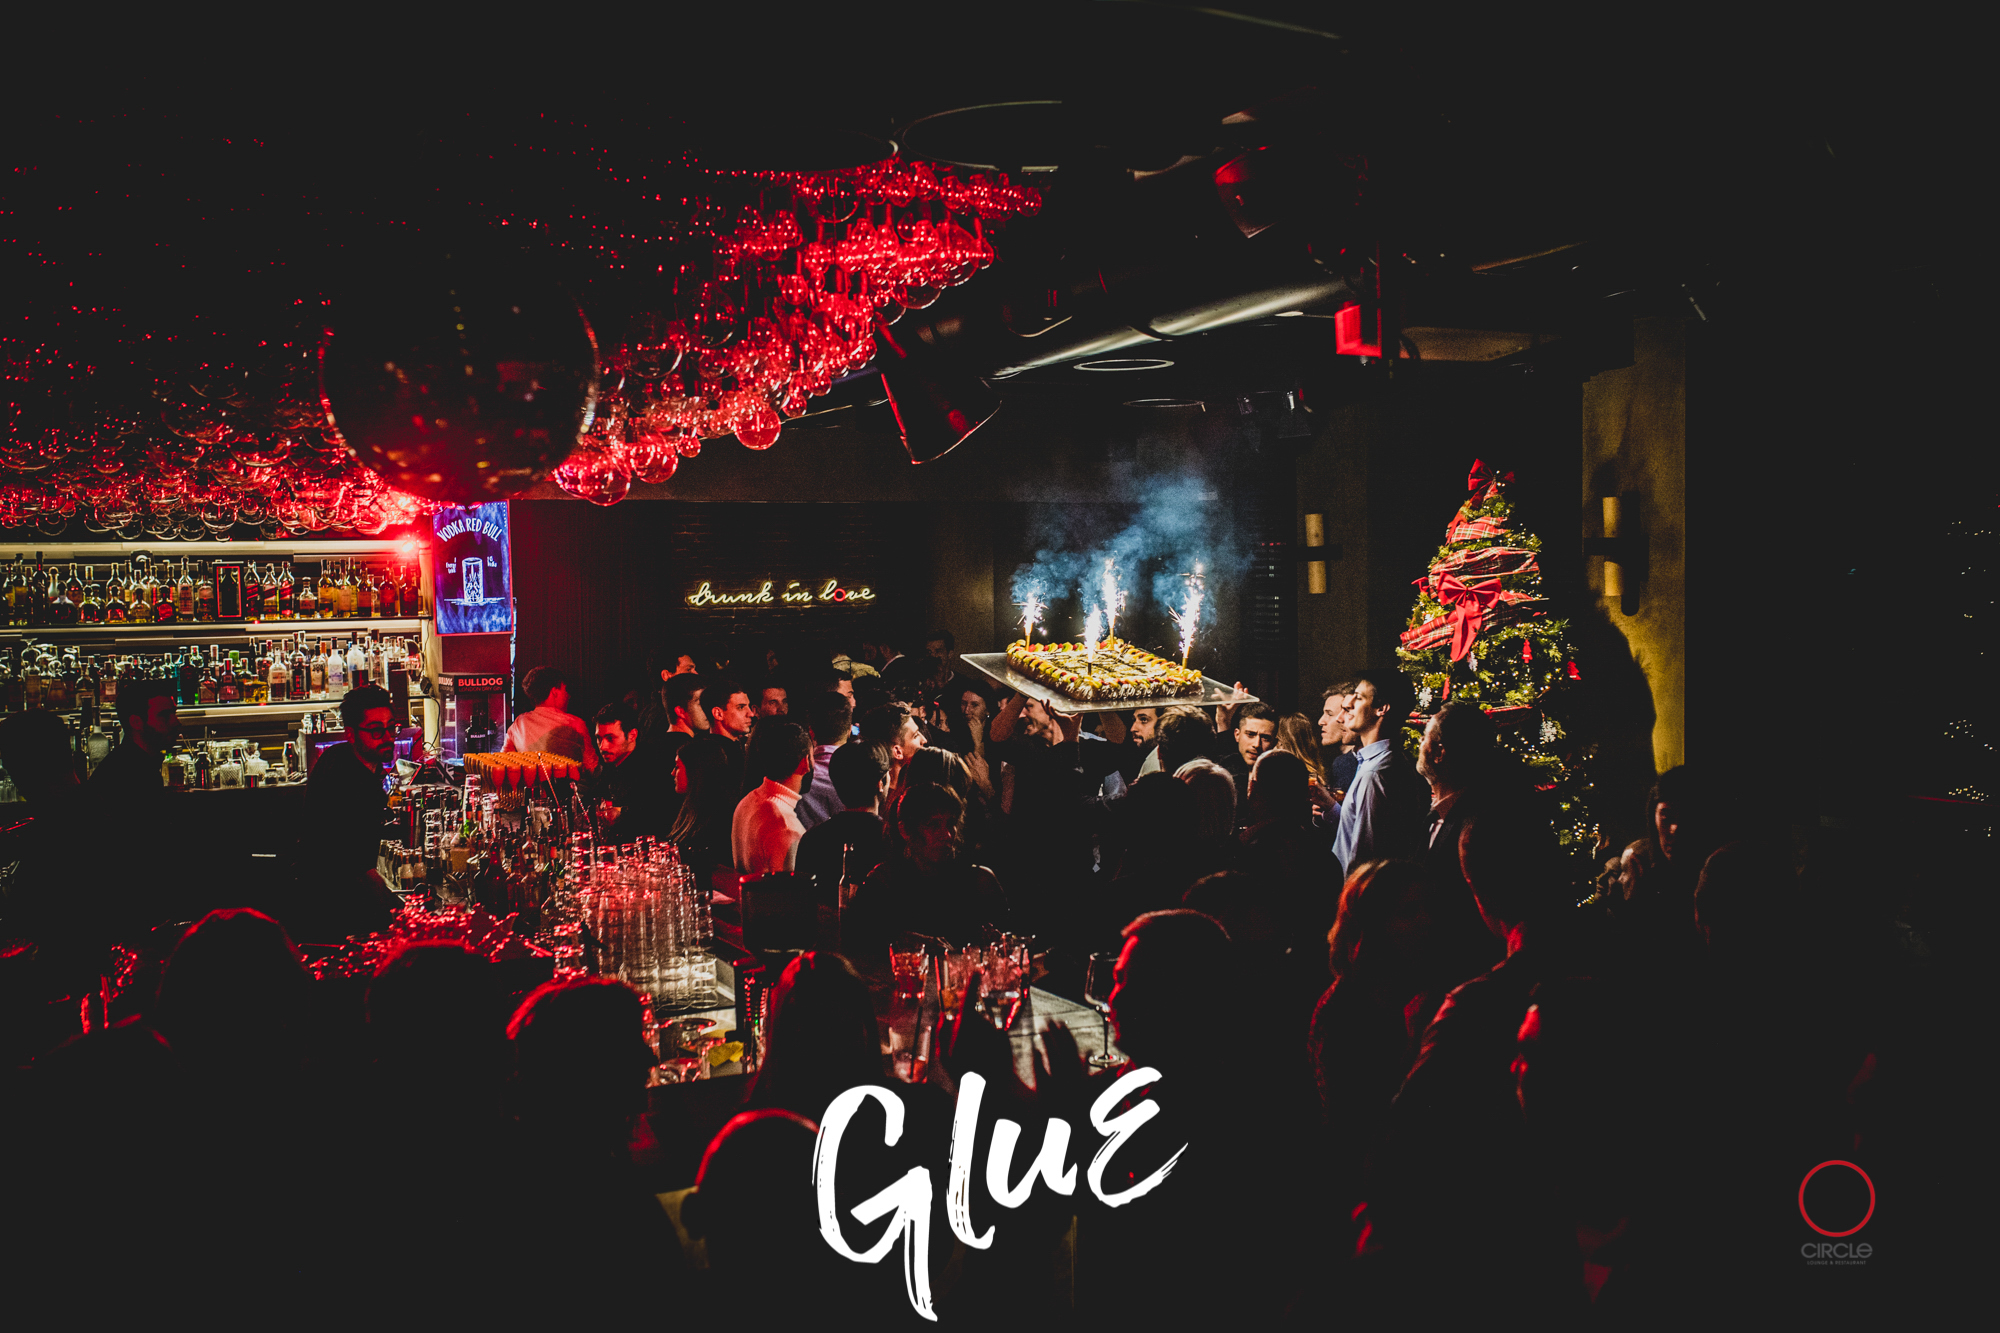 GLUE | Stefano Fontana aka Stylophonic | YOUparti circle milano friday free house music